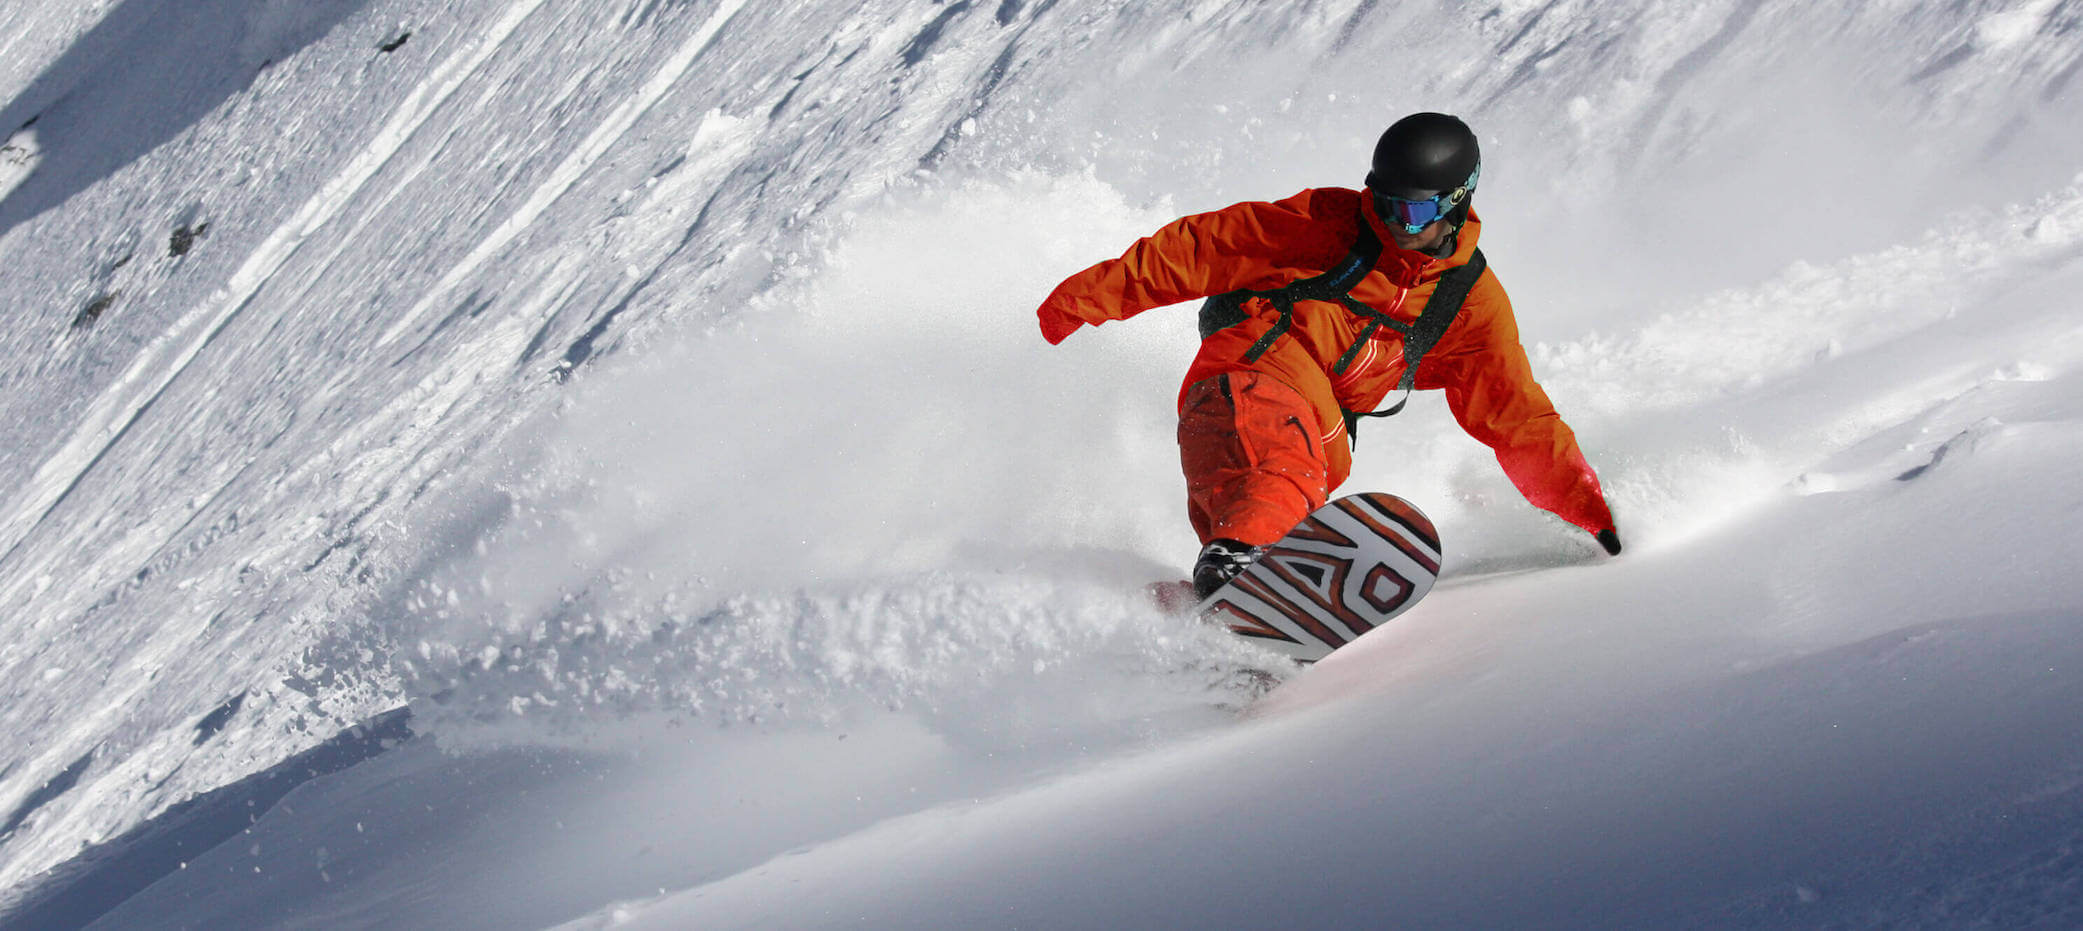 2083x931 > Snowboarding Wallpapers